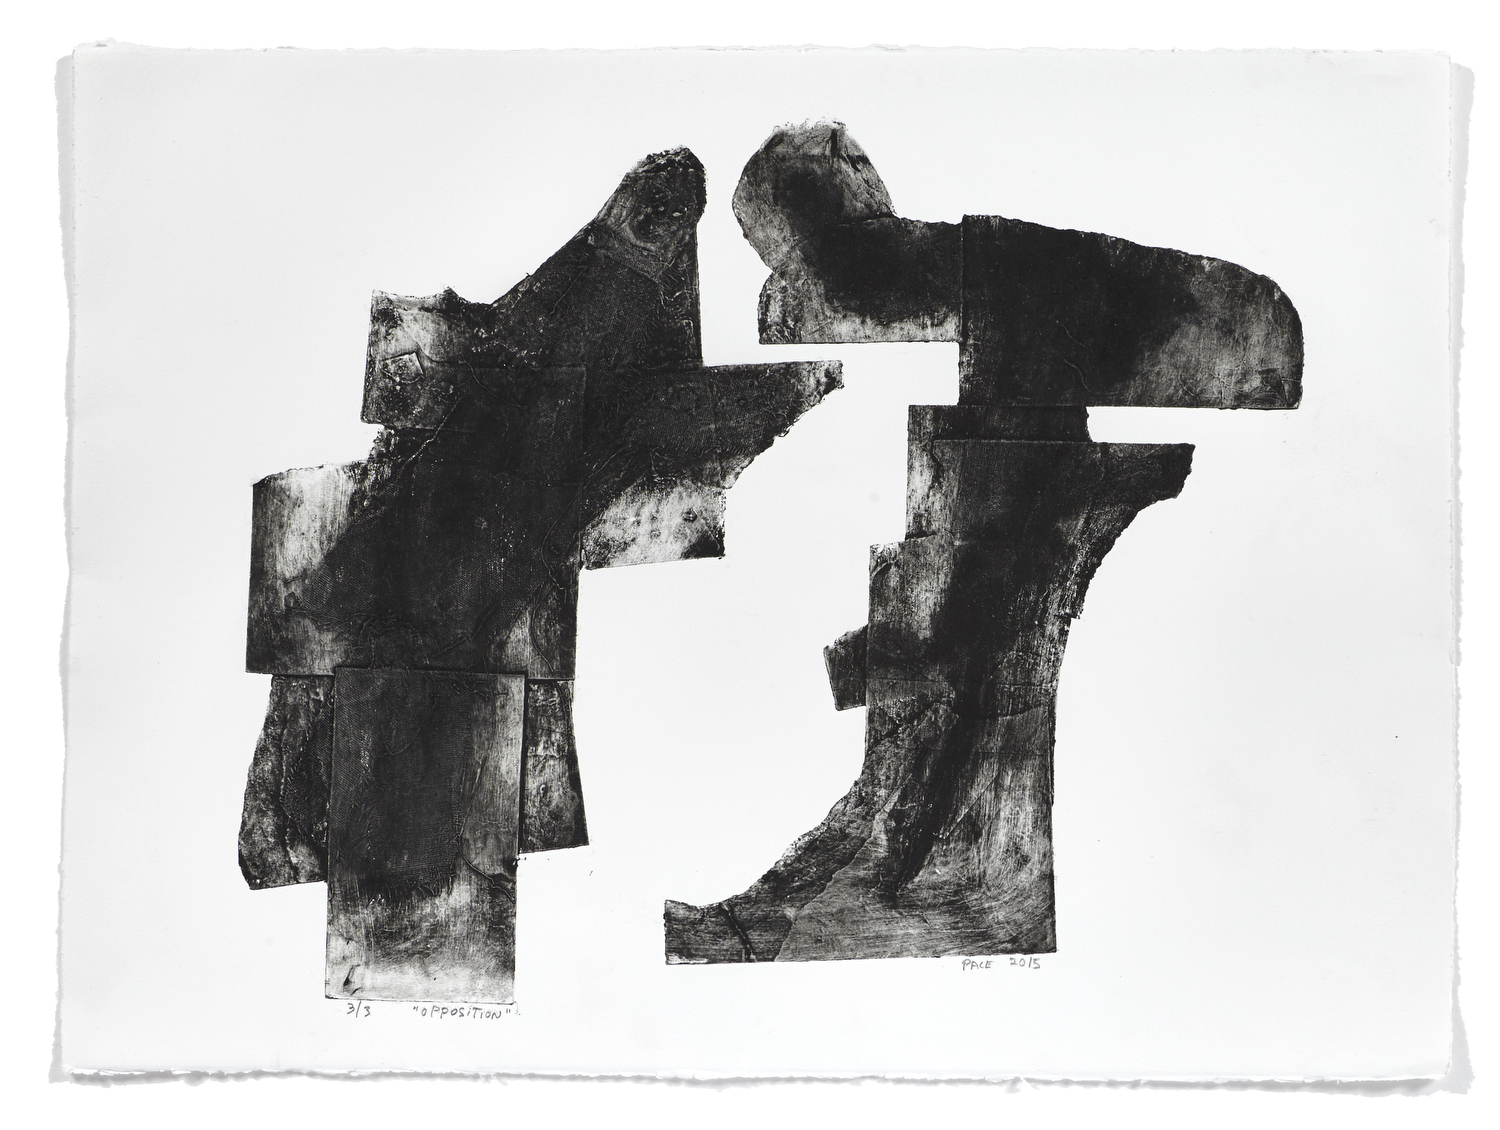 Opposition     2015 | 56 x 76 cm | Collagraphie | 3 exemplaires